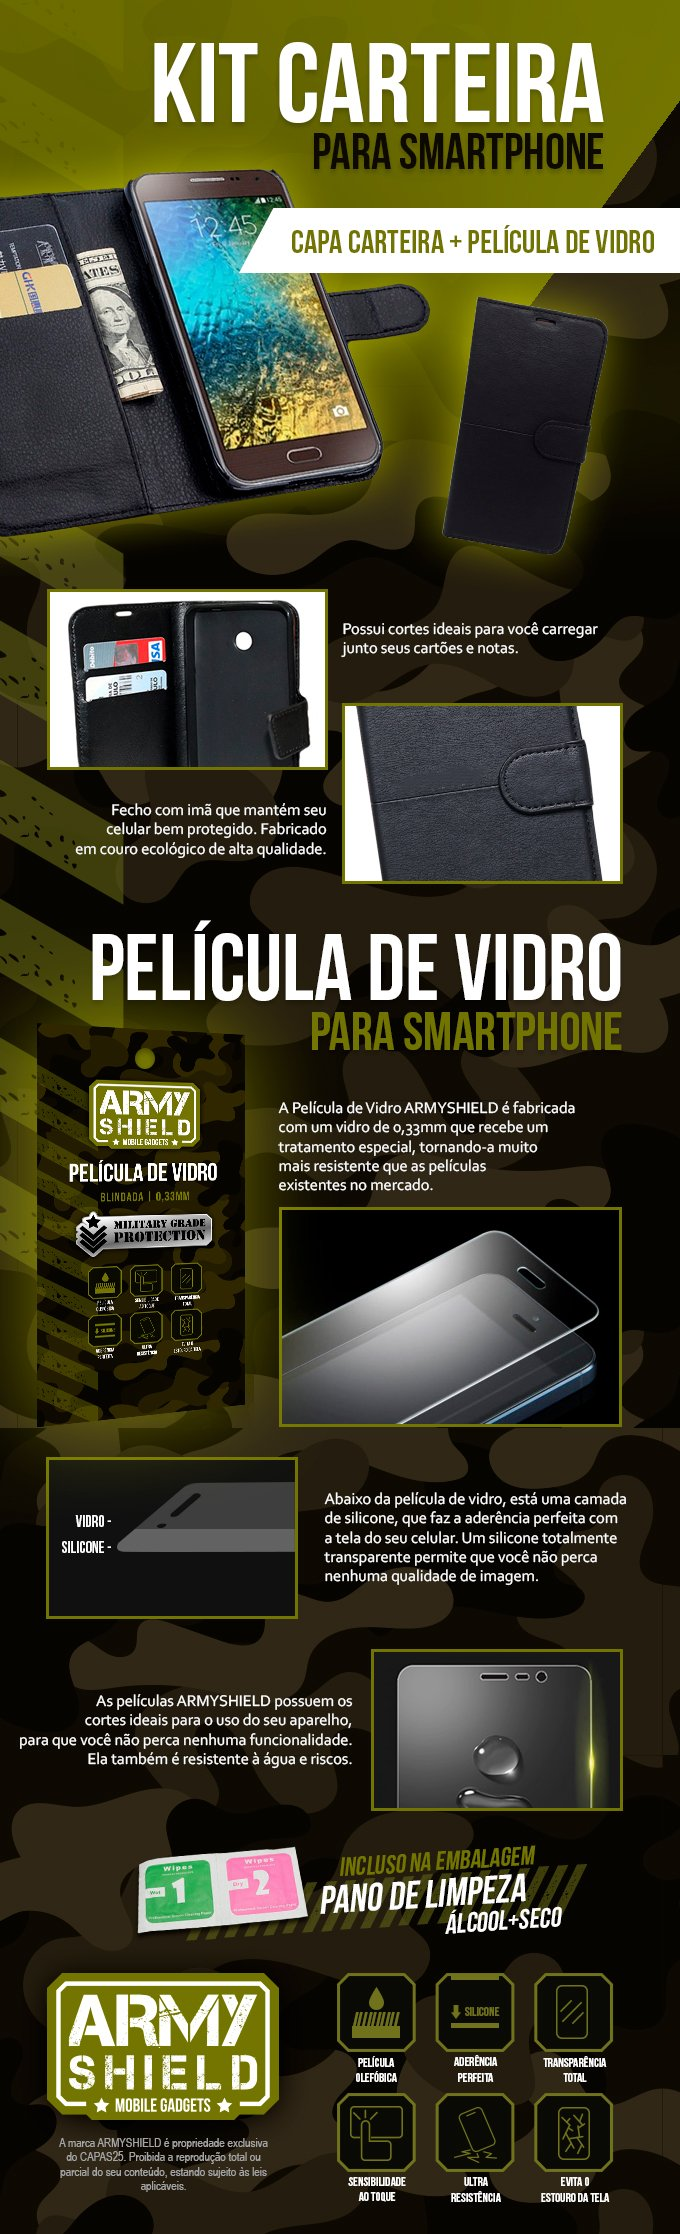 Kit Carteira Armyshield.